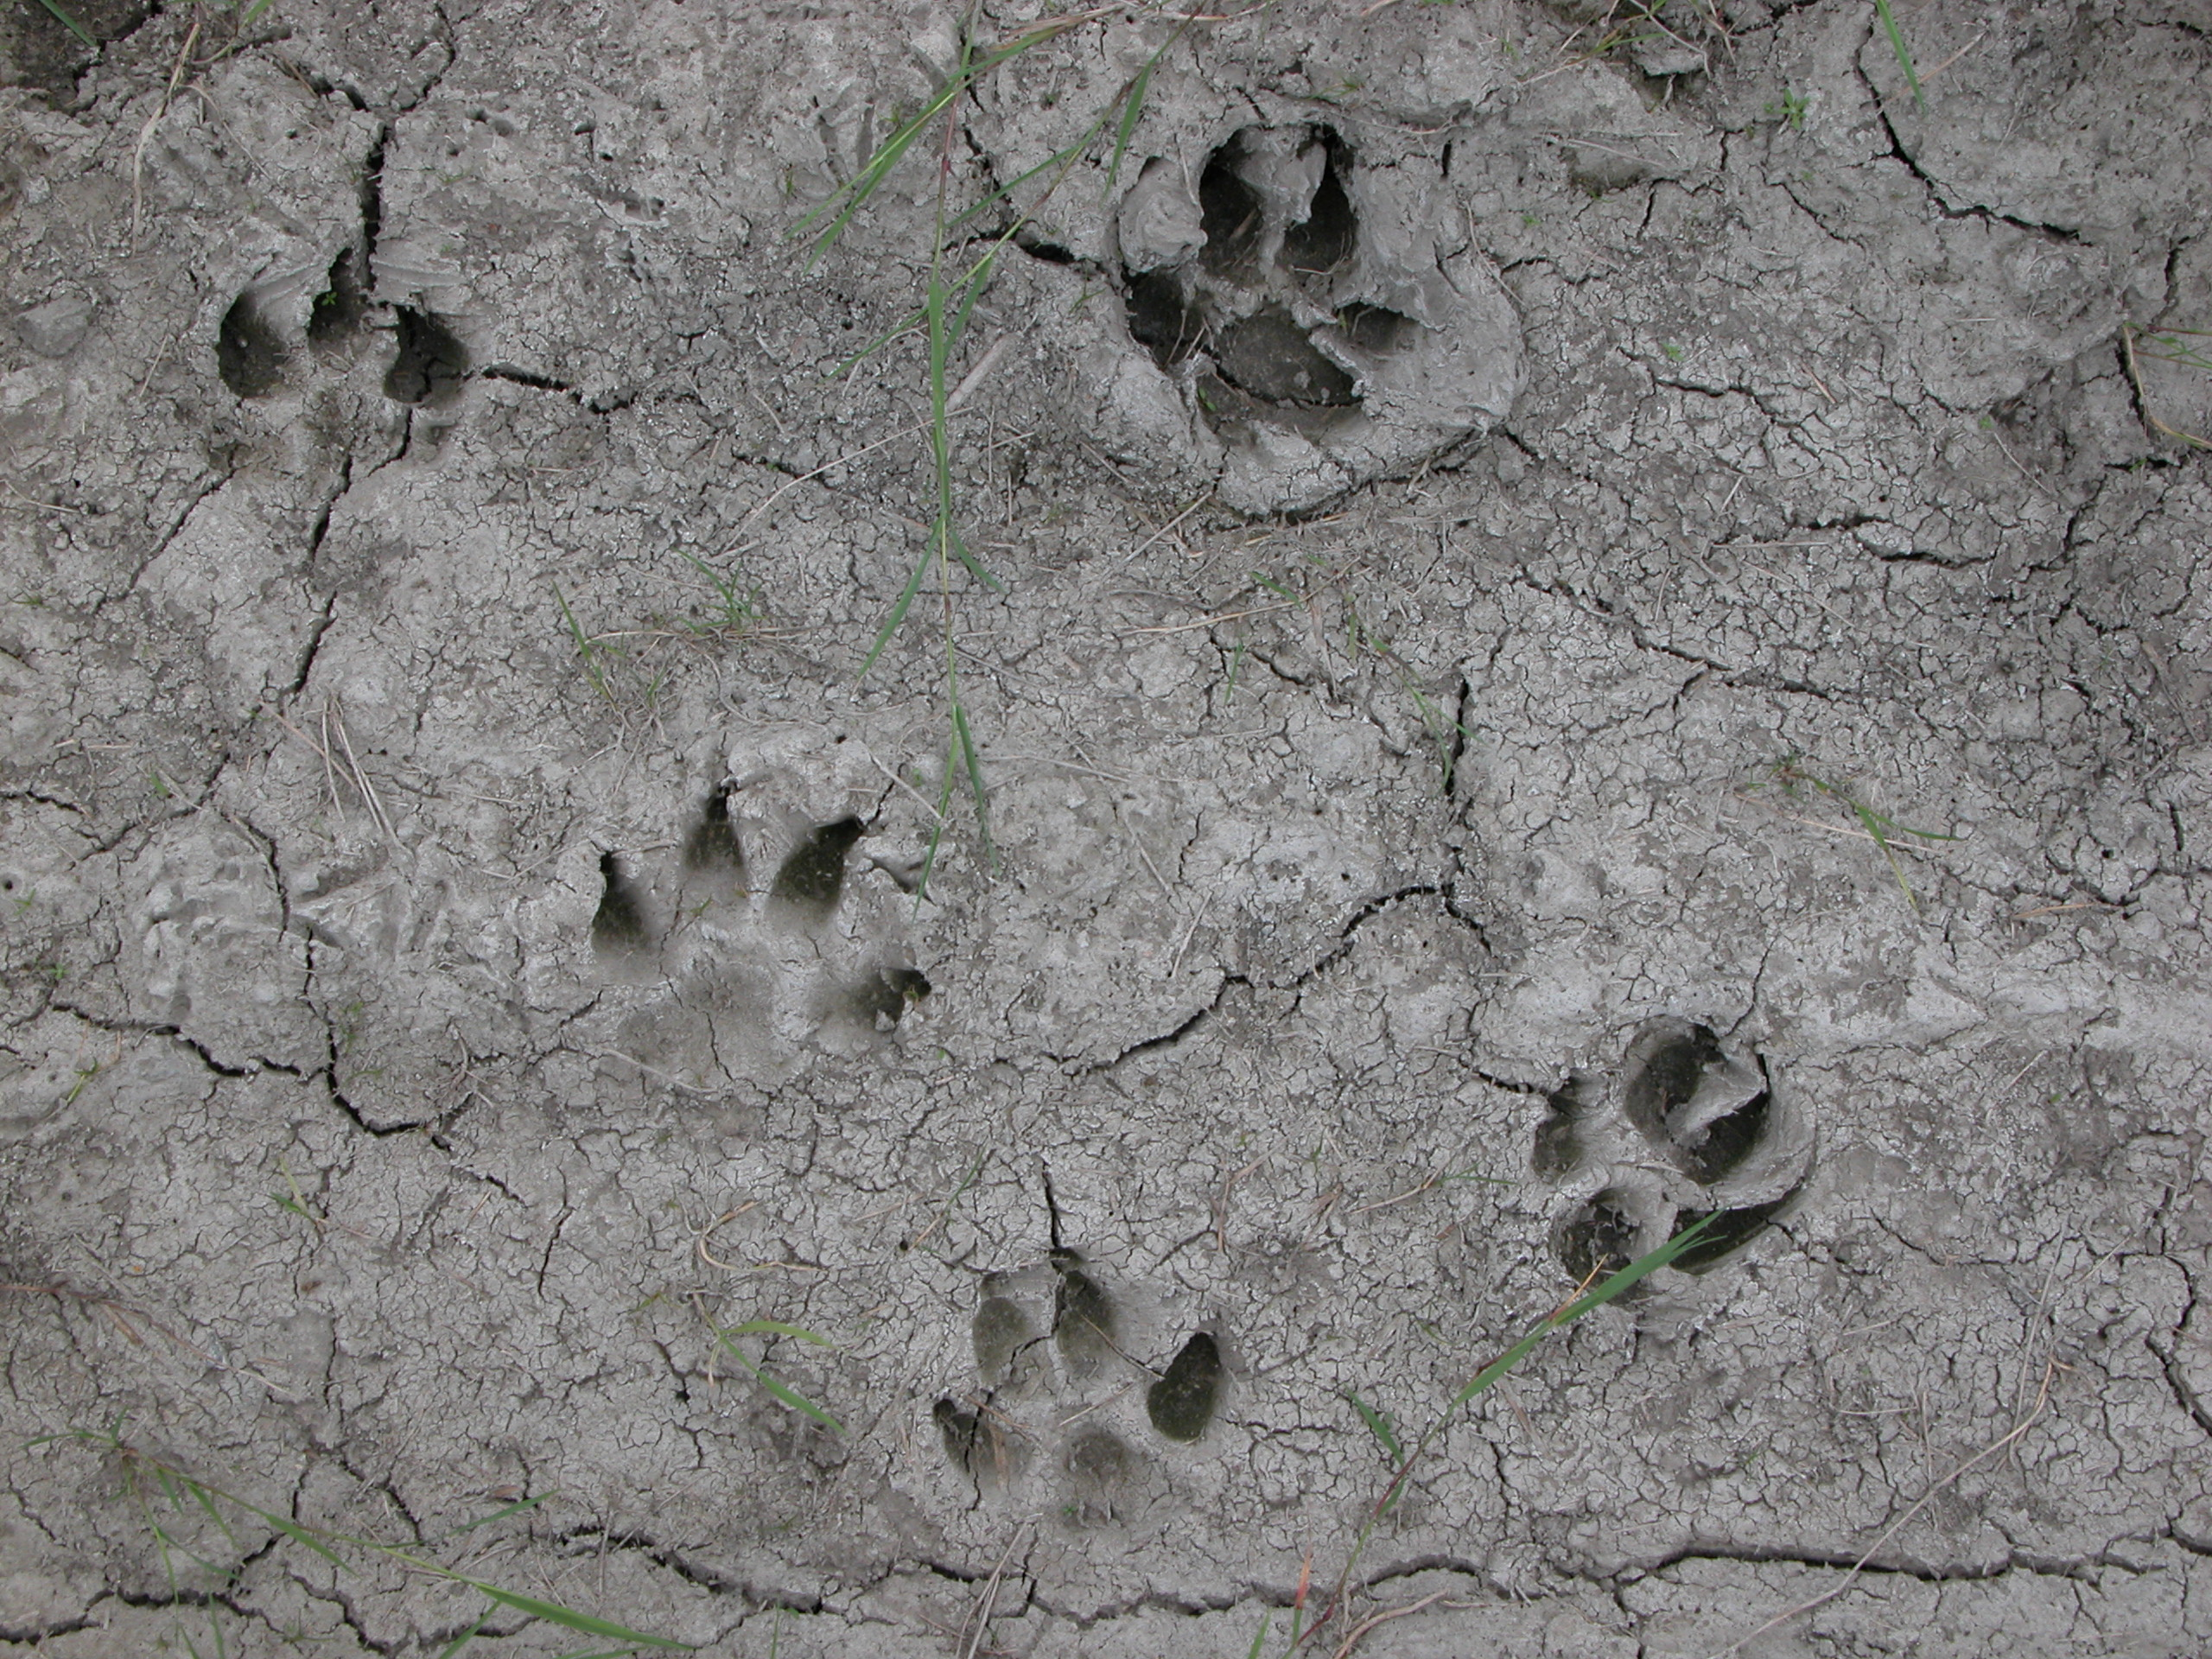 cat or dog paw prints in the mud